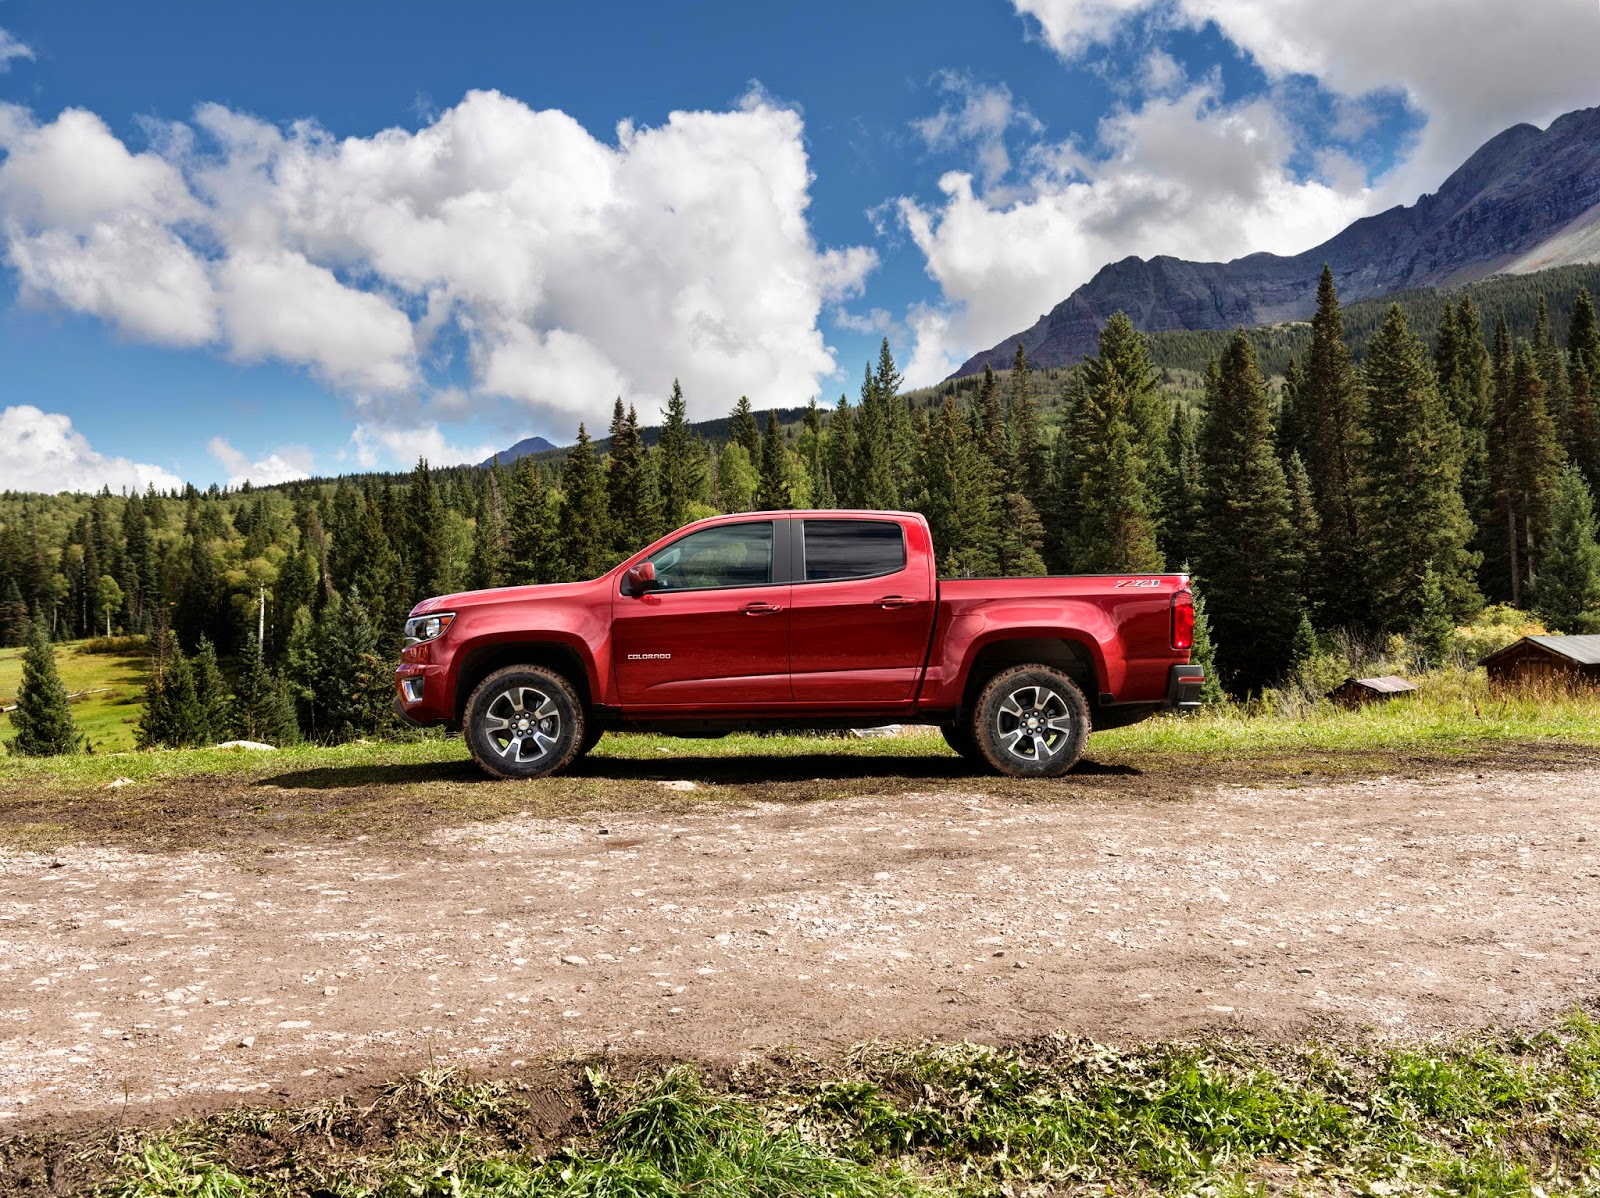 2015 Chevy Colorado Offers Most HP In Midsize Truck Segment